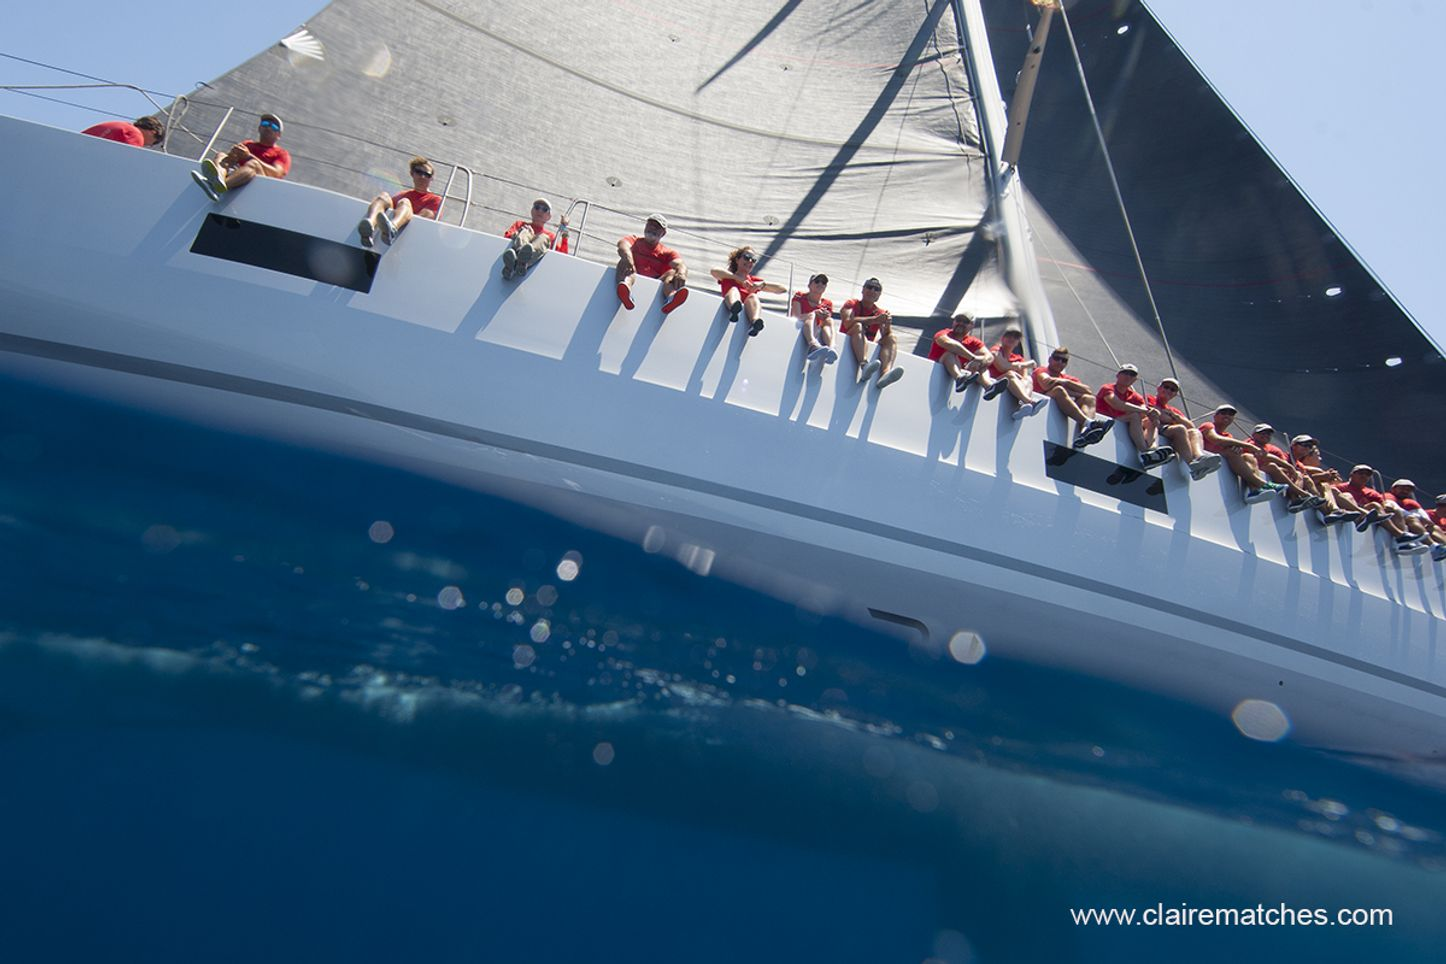 close up of crew on board a competing yacht at the Palma Superyacht Cup